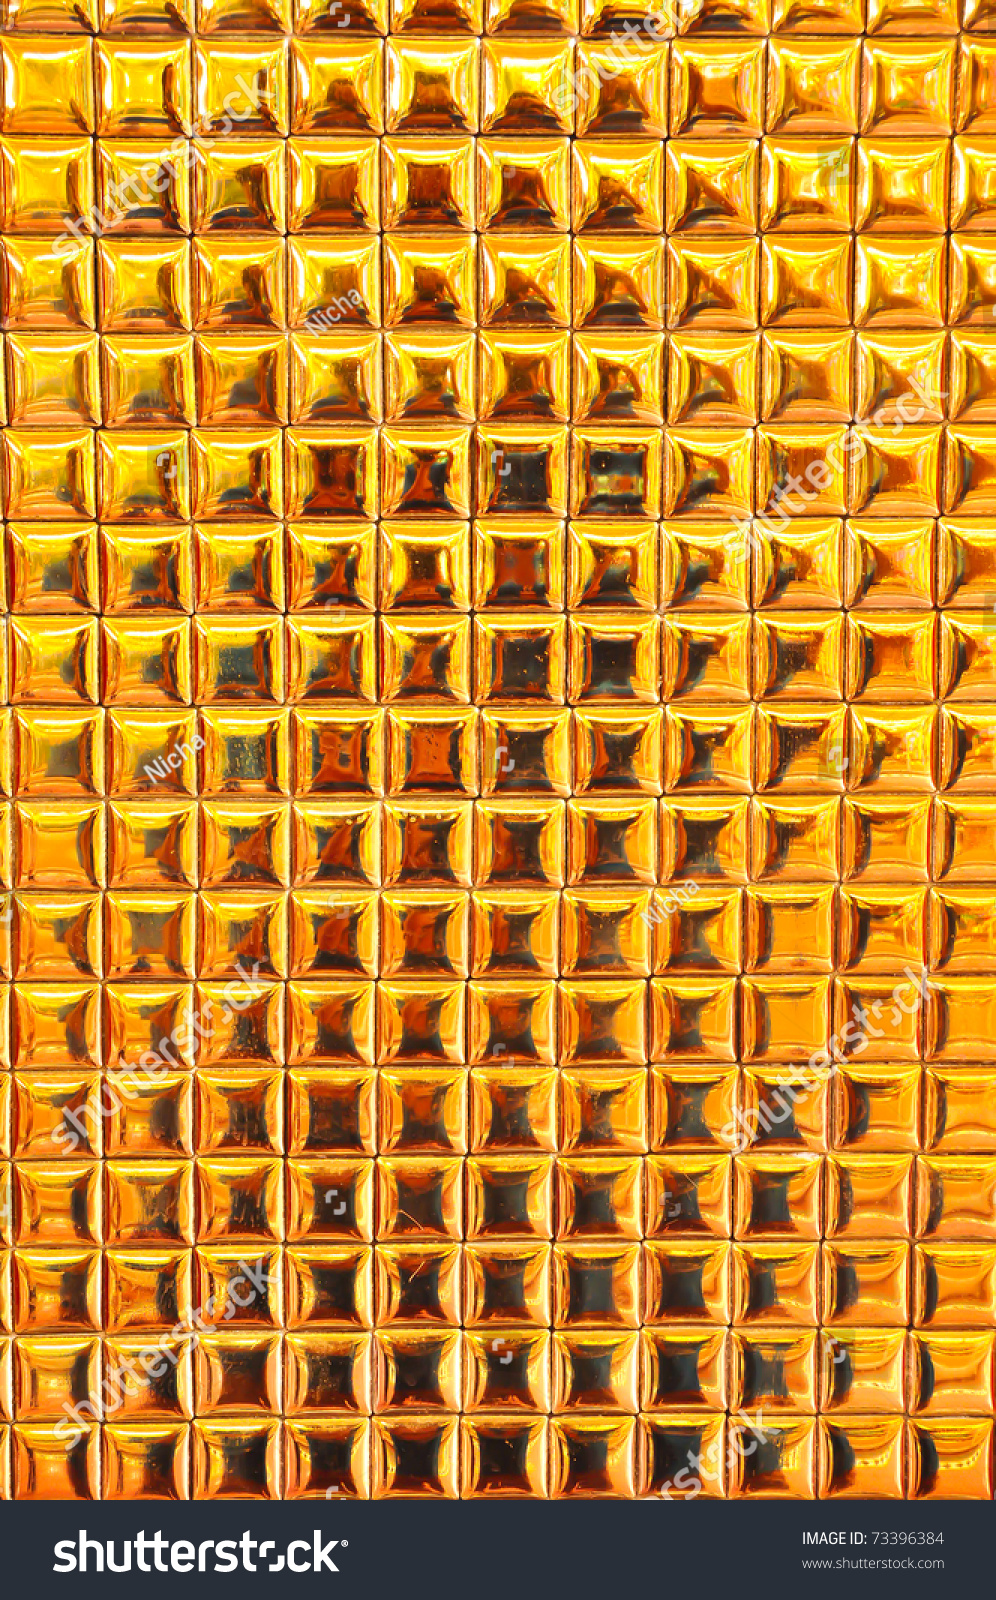 Golden ceramic tile texture stock photo 73396384 shutterstock golden ceramic tile texture dailygadgetfo Image collections